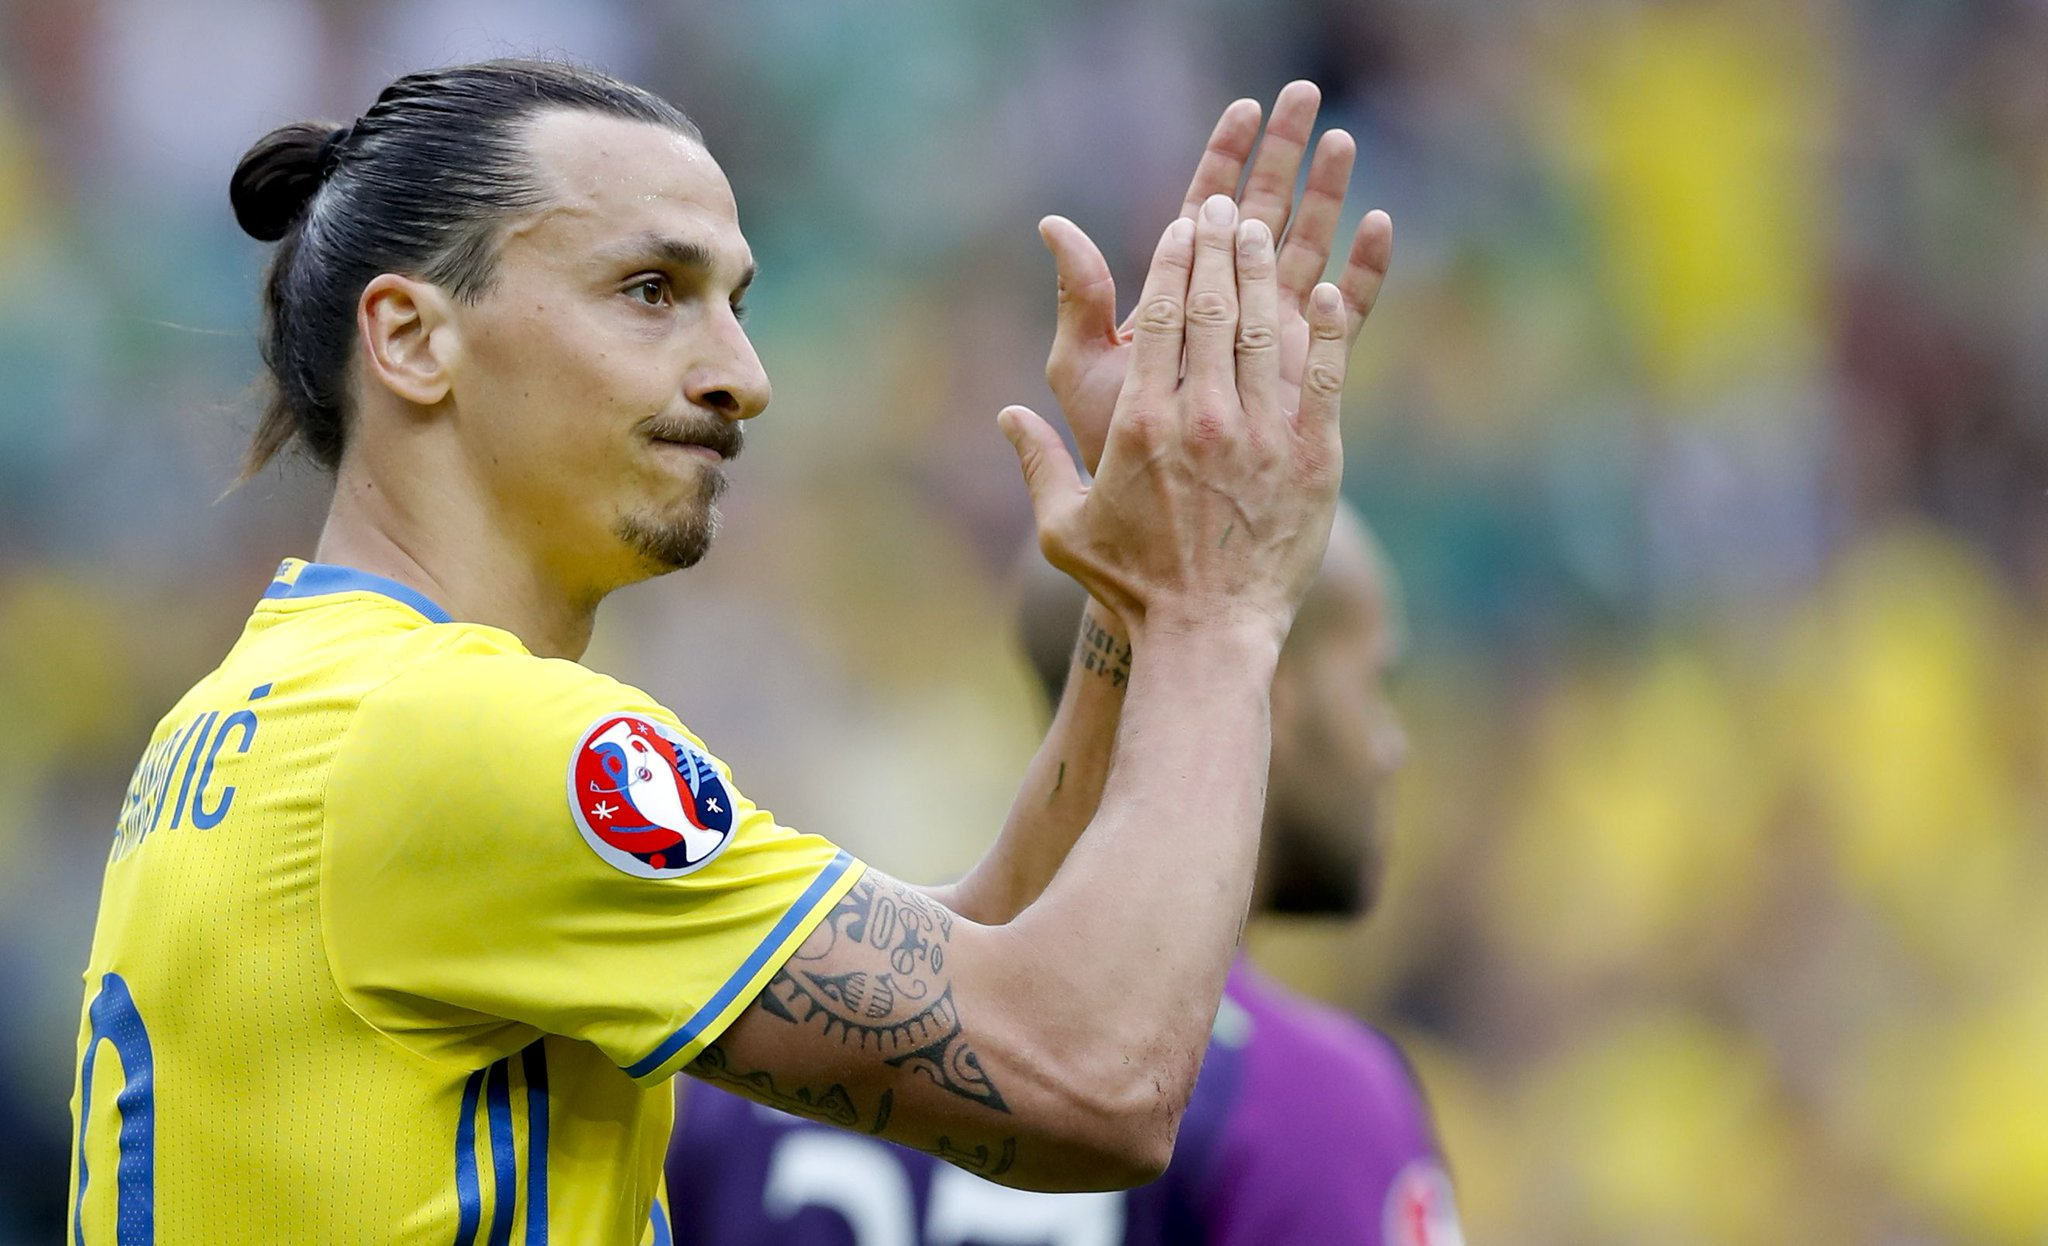 Euro 2016 It is the latest Zlatan Ibrahimovic.